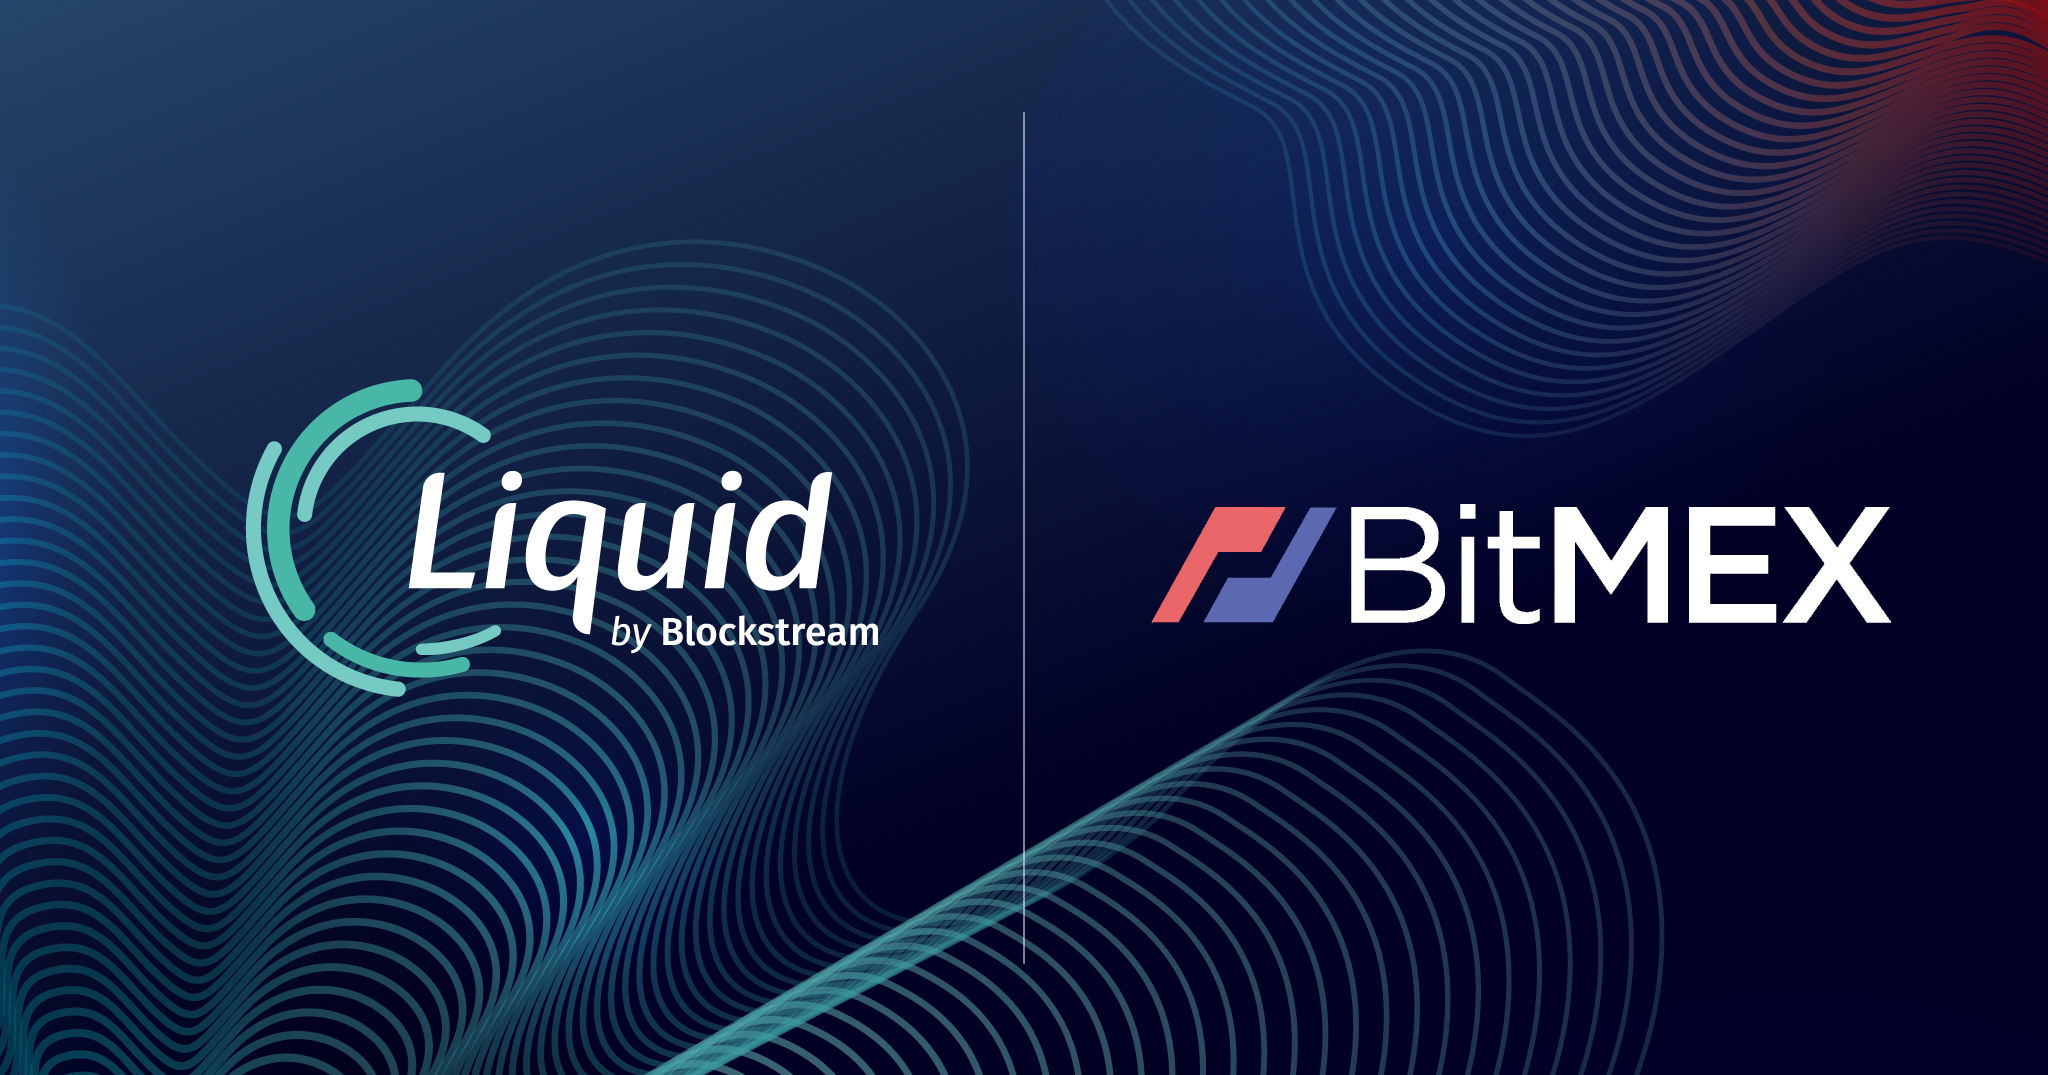 Faster BitMEX Withdrawals with Liquid